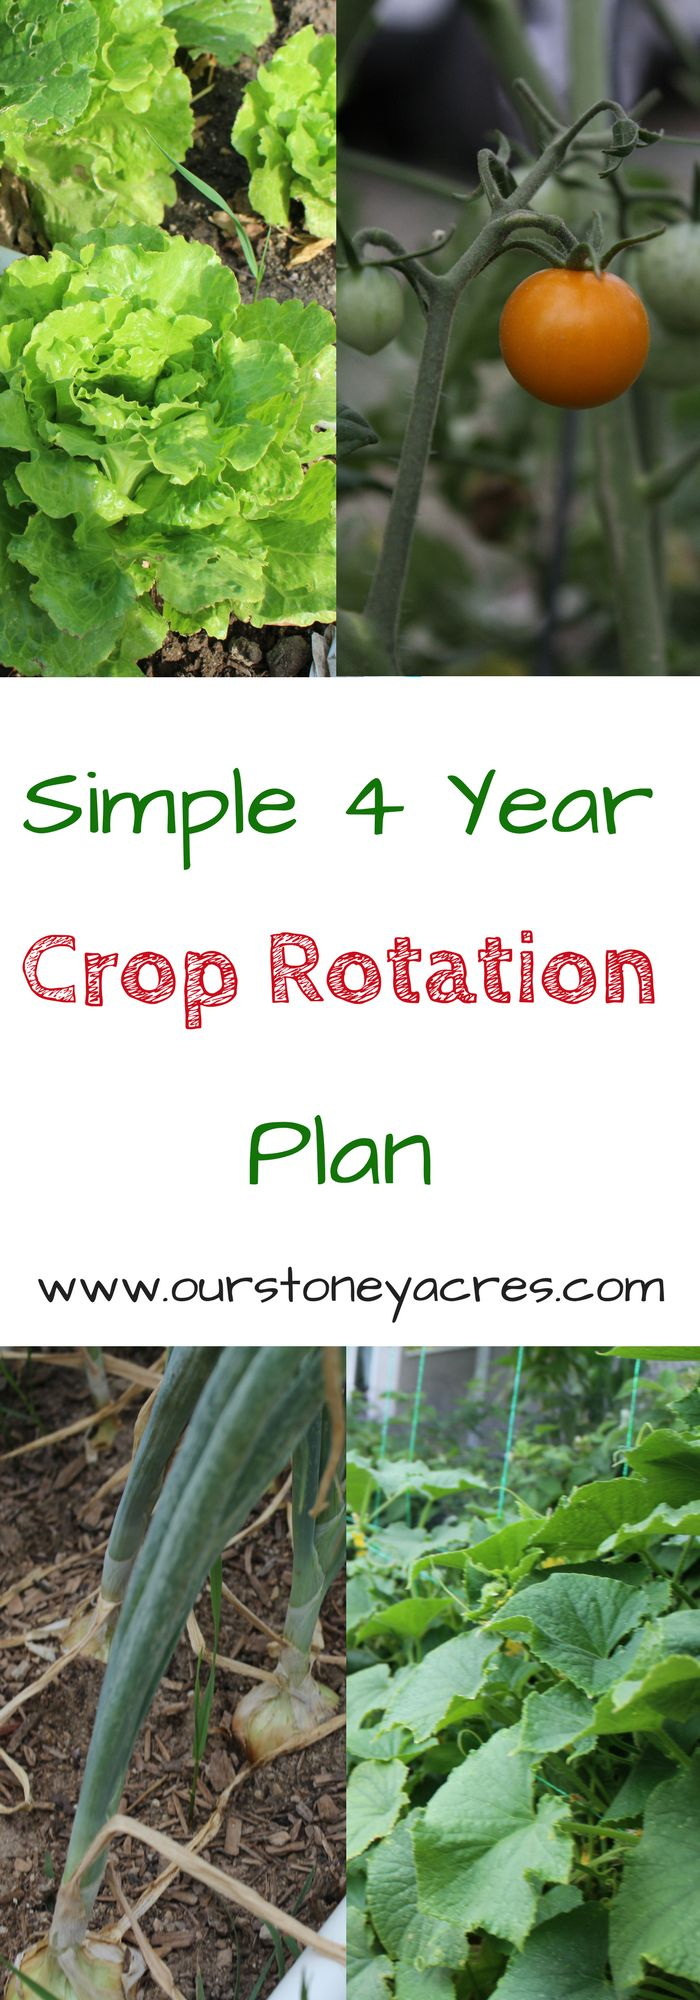 Simple 4 Year Crop Rotation Plan. Crop rotation in a home garden is more important than many people think. This simple 4 year crop rotation plan will keep your garden and soil healthy.